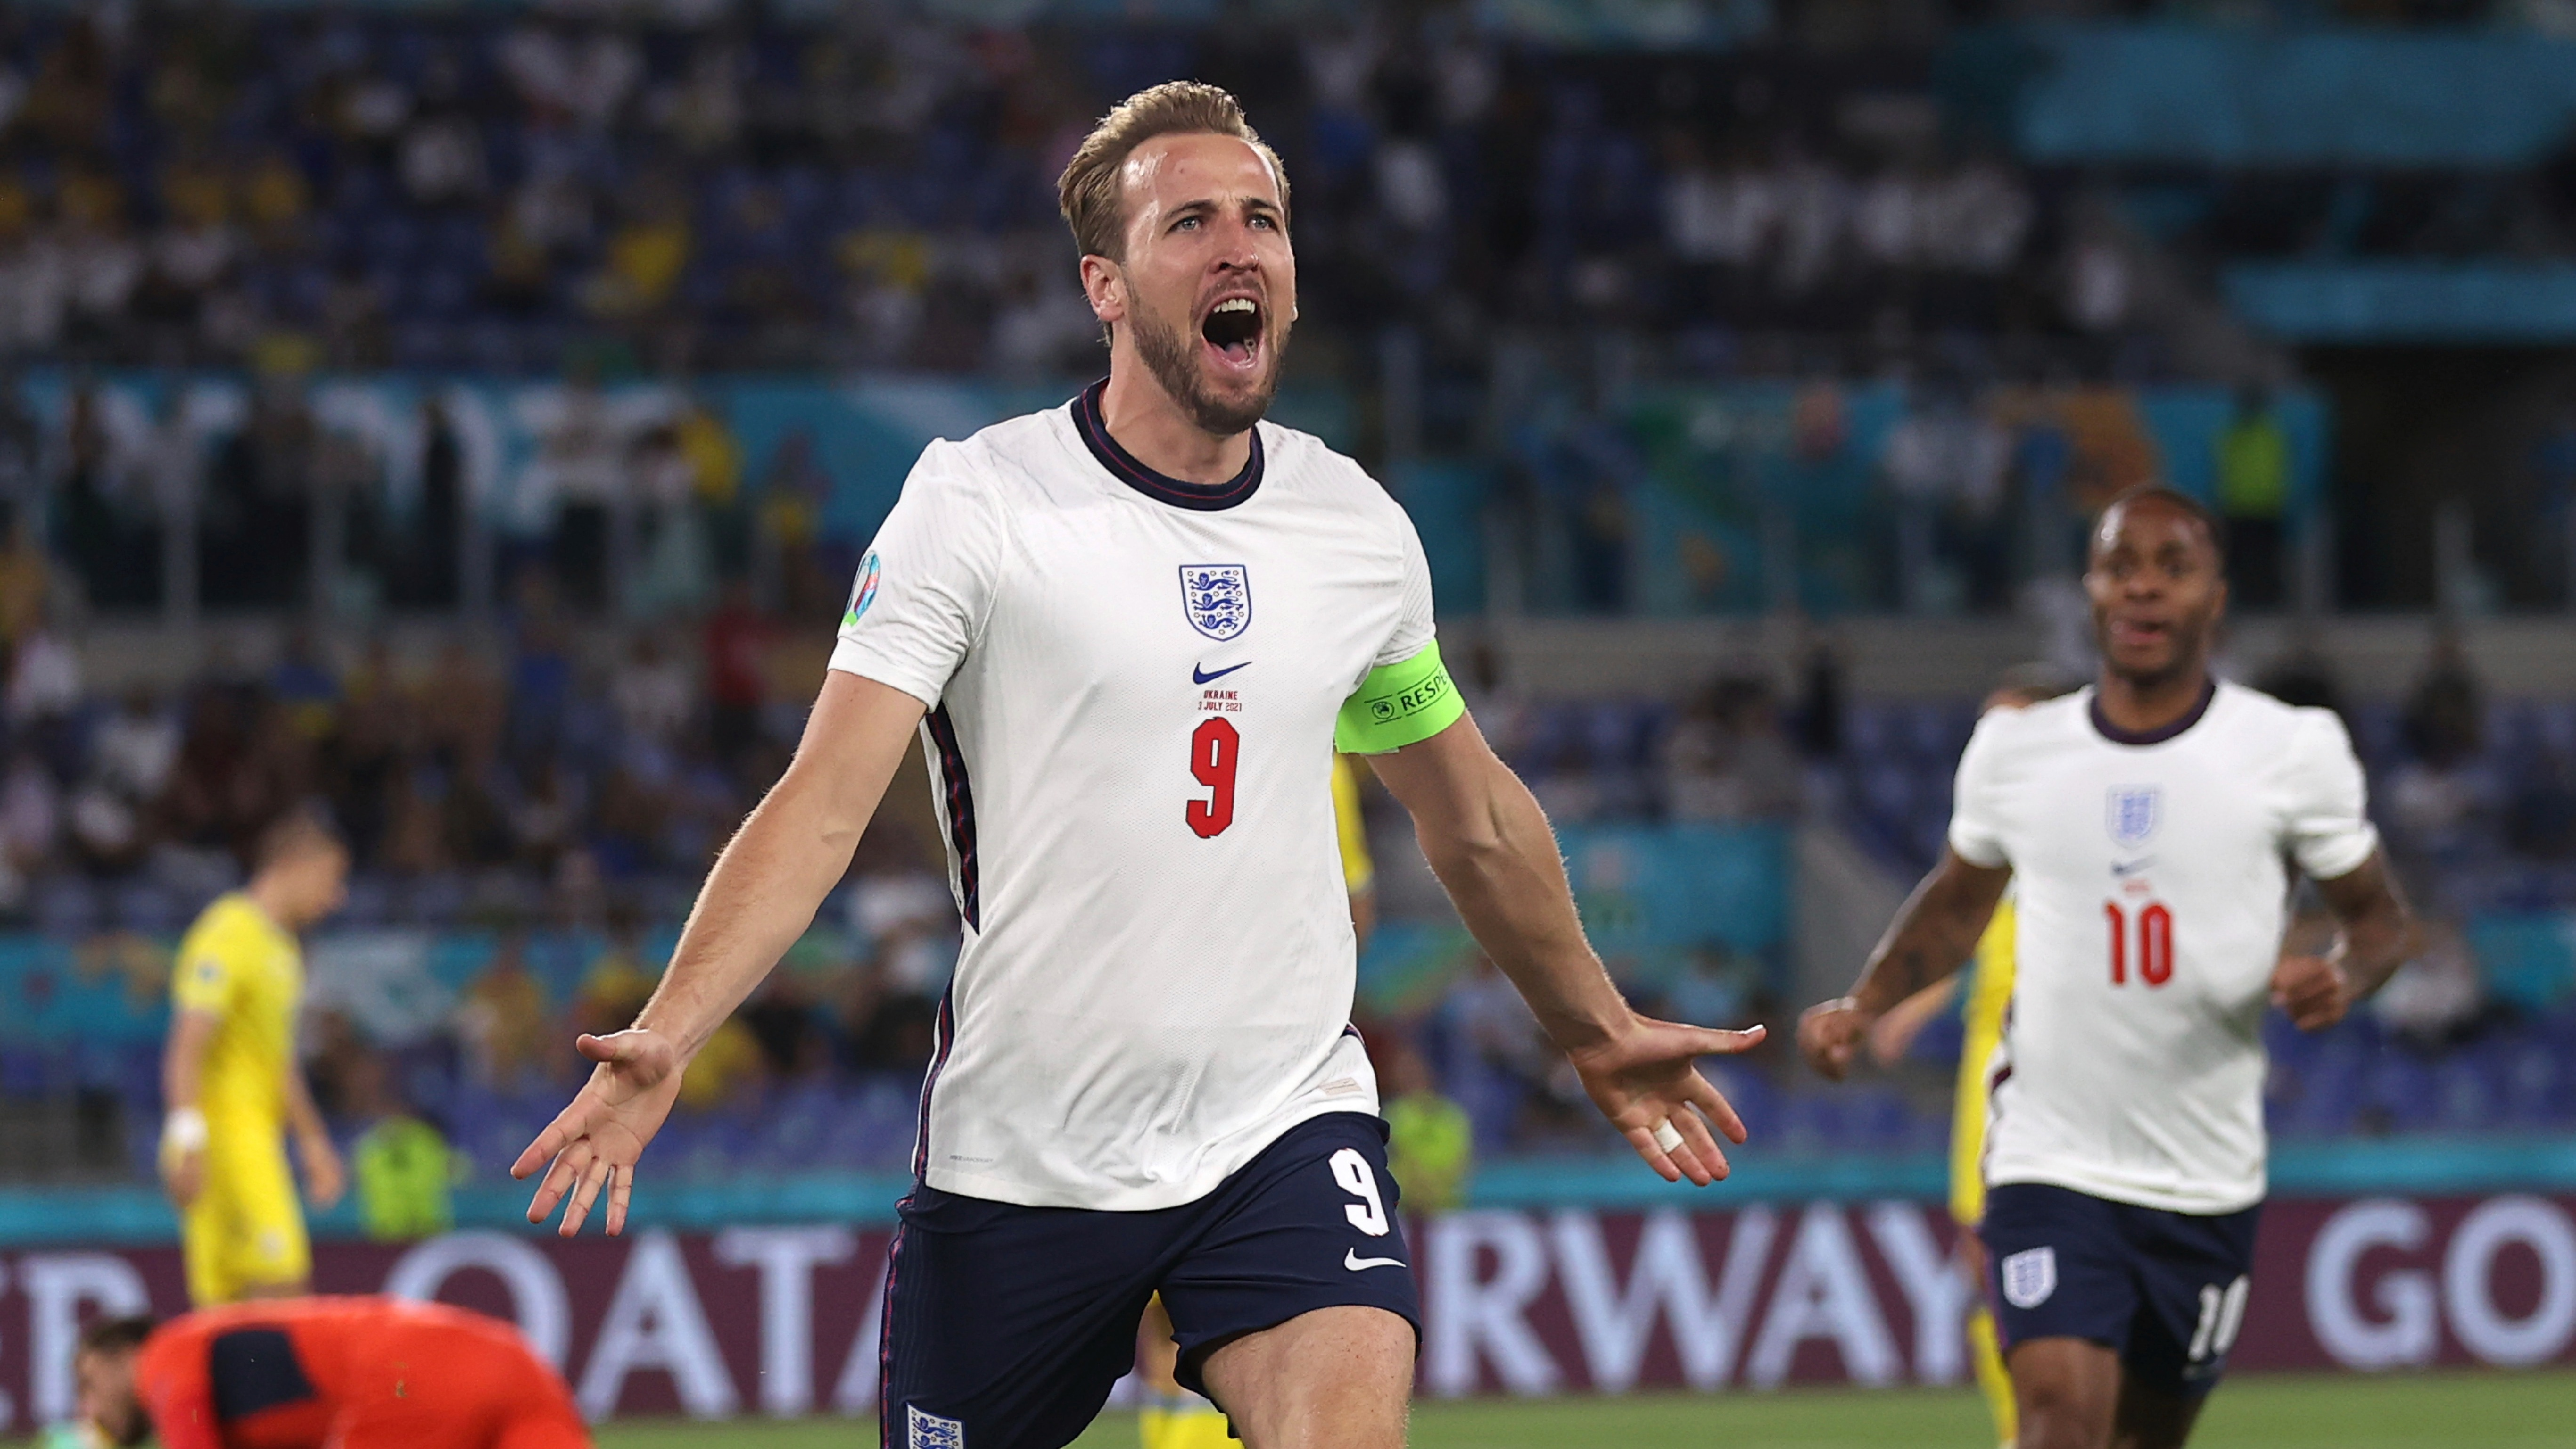 ITV to show exclusive live coverage of England v Denmark Euro 2020 semi-final